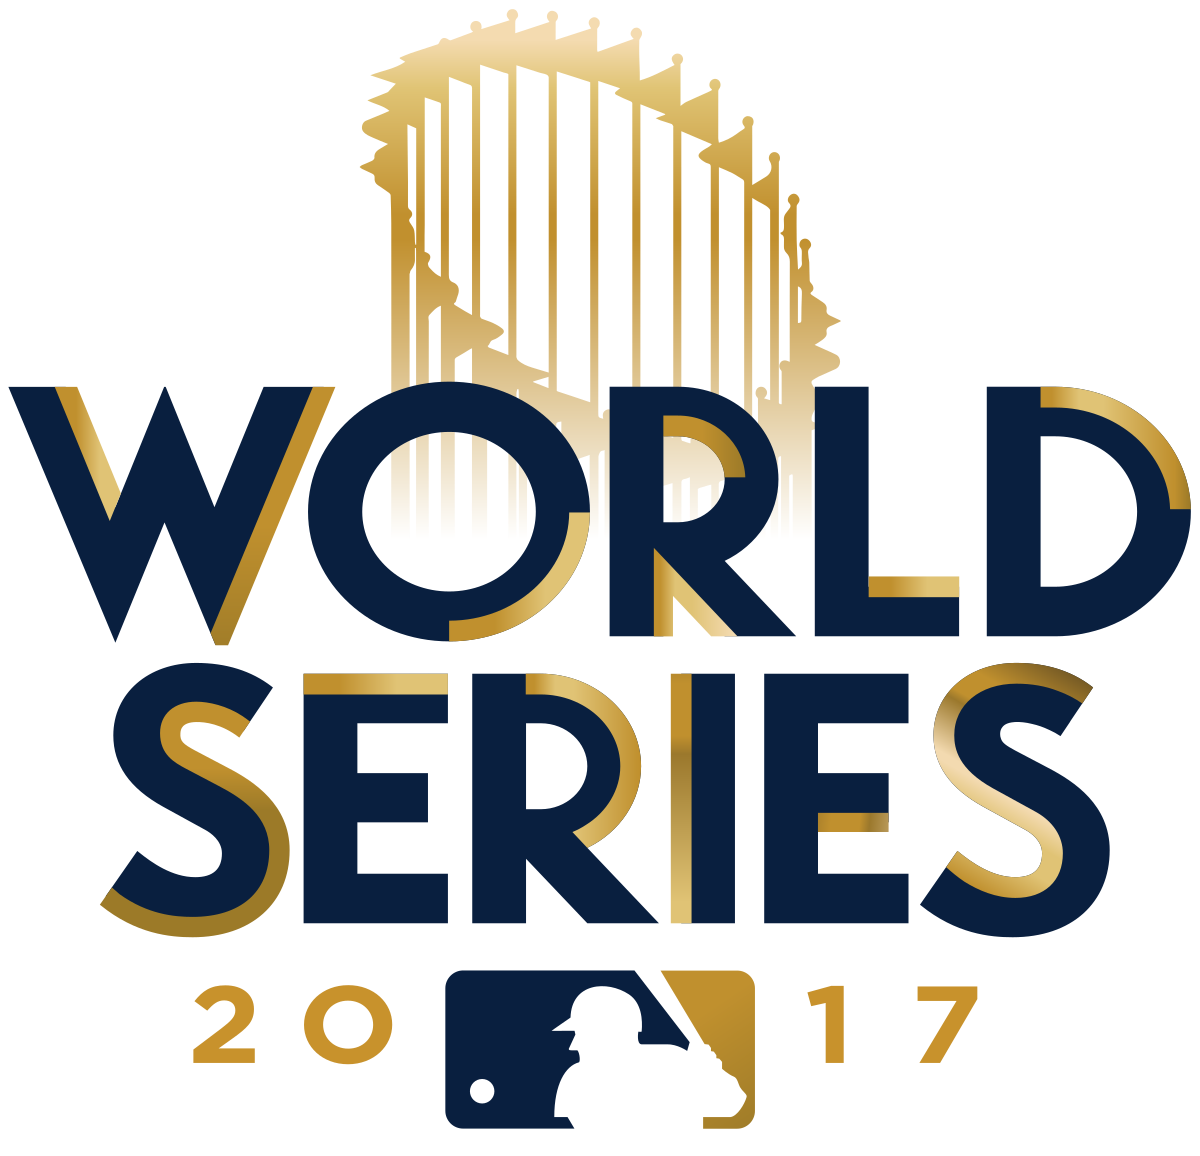 The 2017 World Series